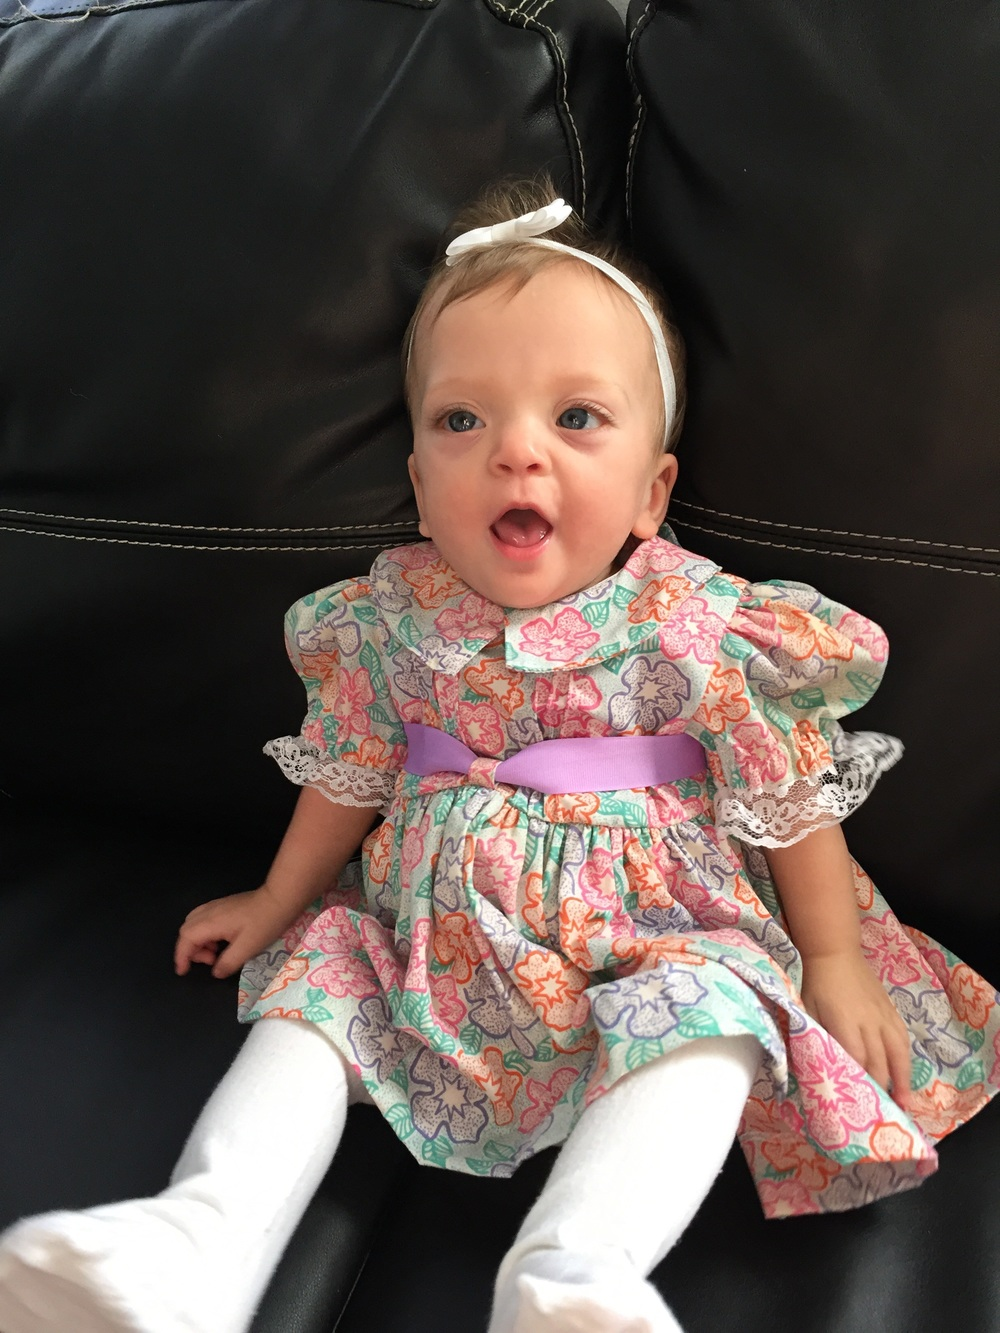 Lucie wearing a dress made from one of my favorite outfits as a child. My mom secretly saved it and had a friend make this for Lucie.